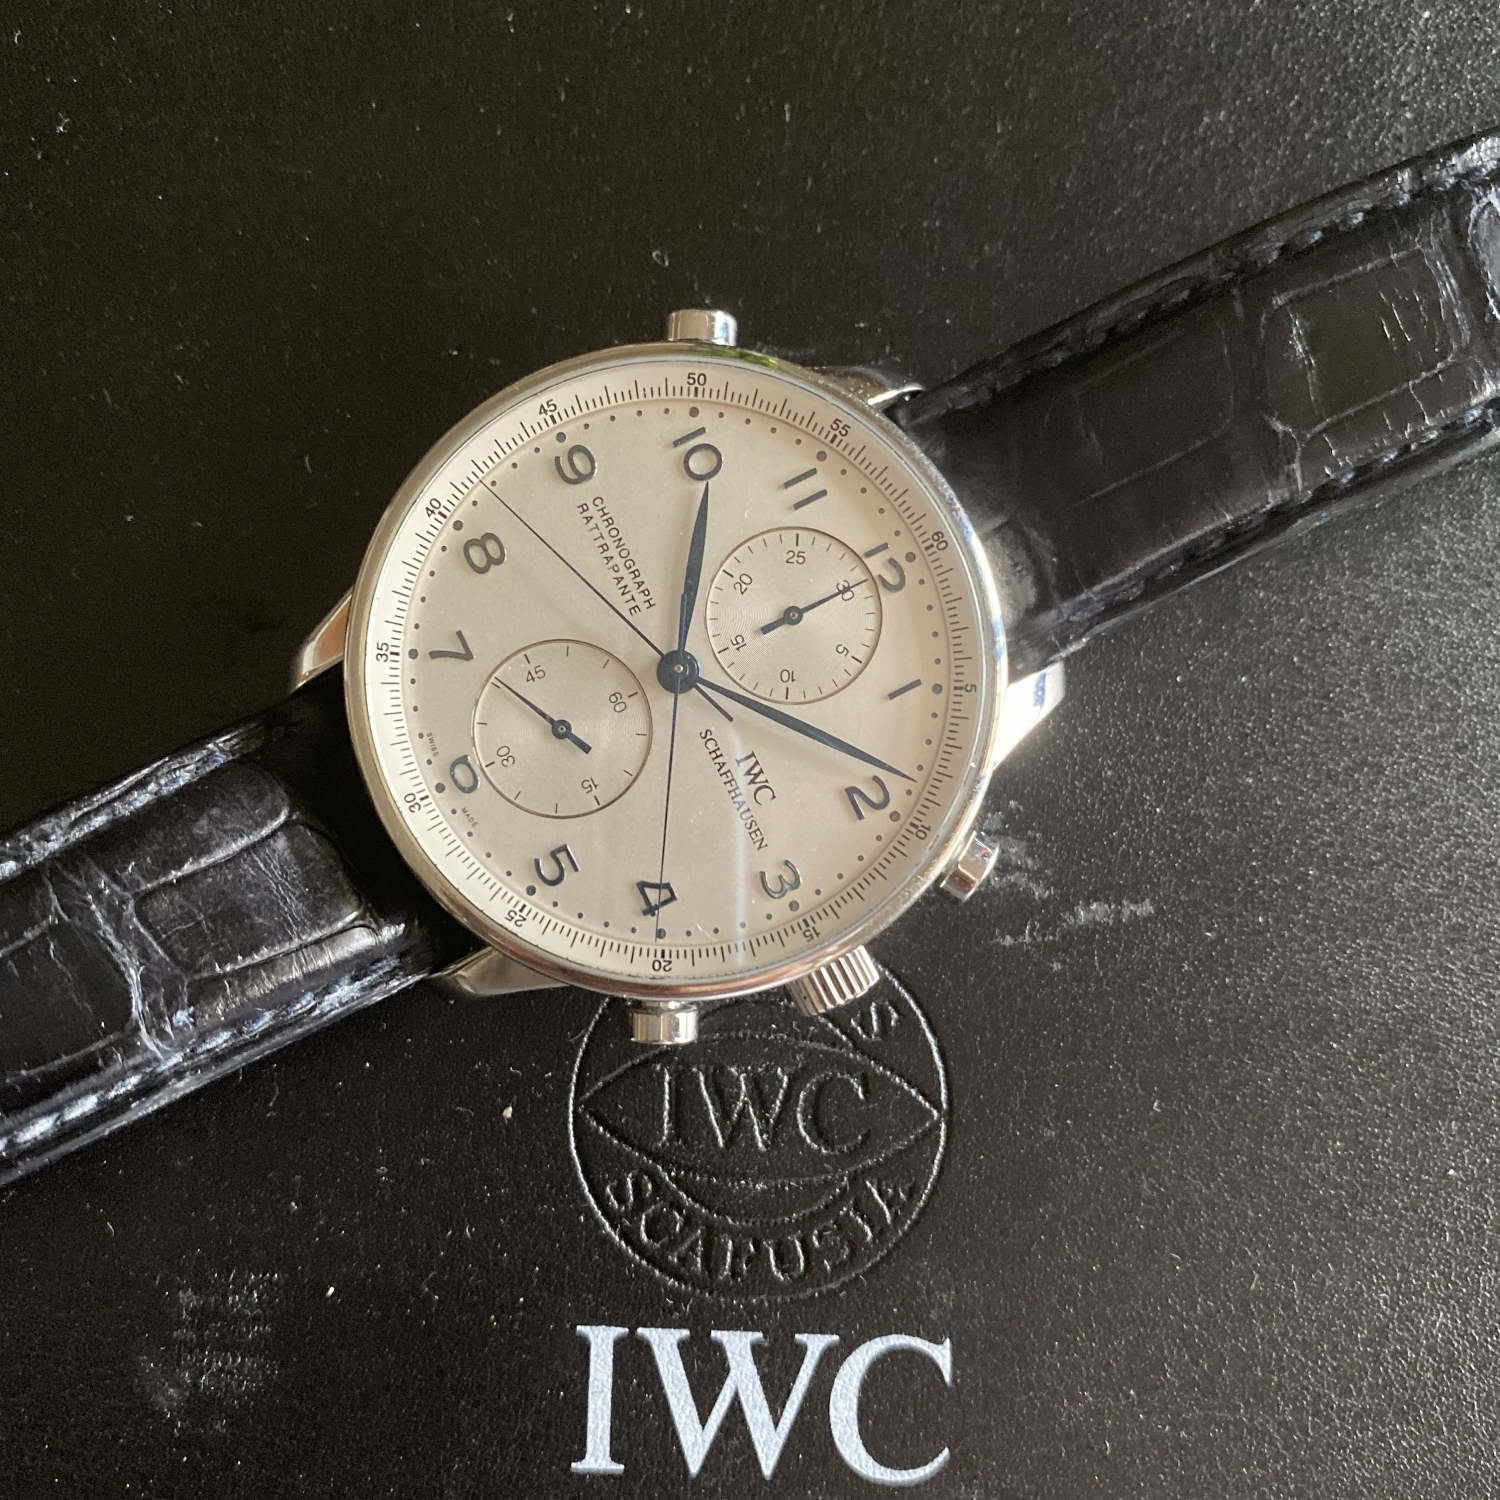 Vintage Watches and Cars - VWCWEB.COM